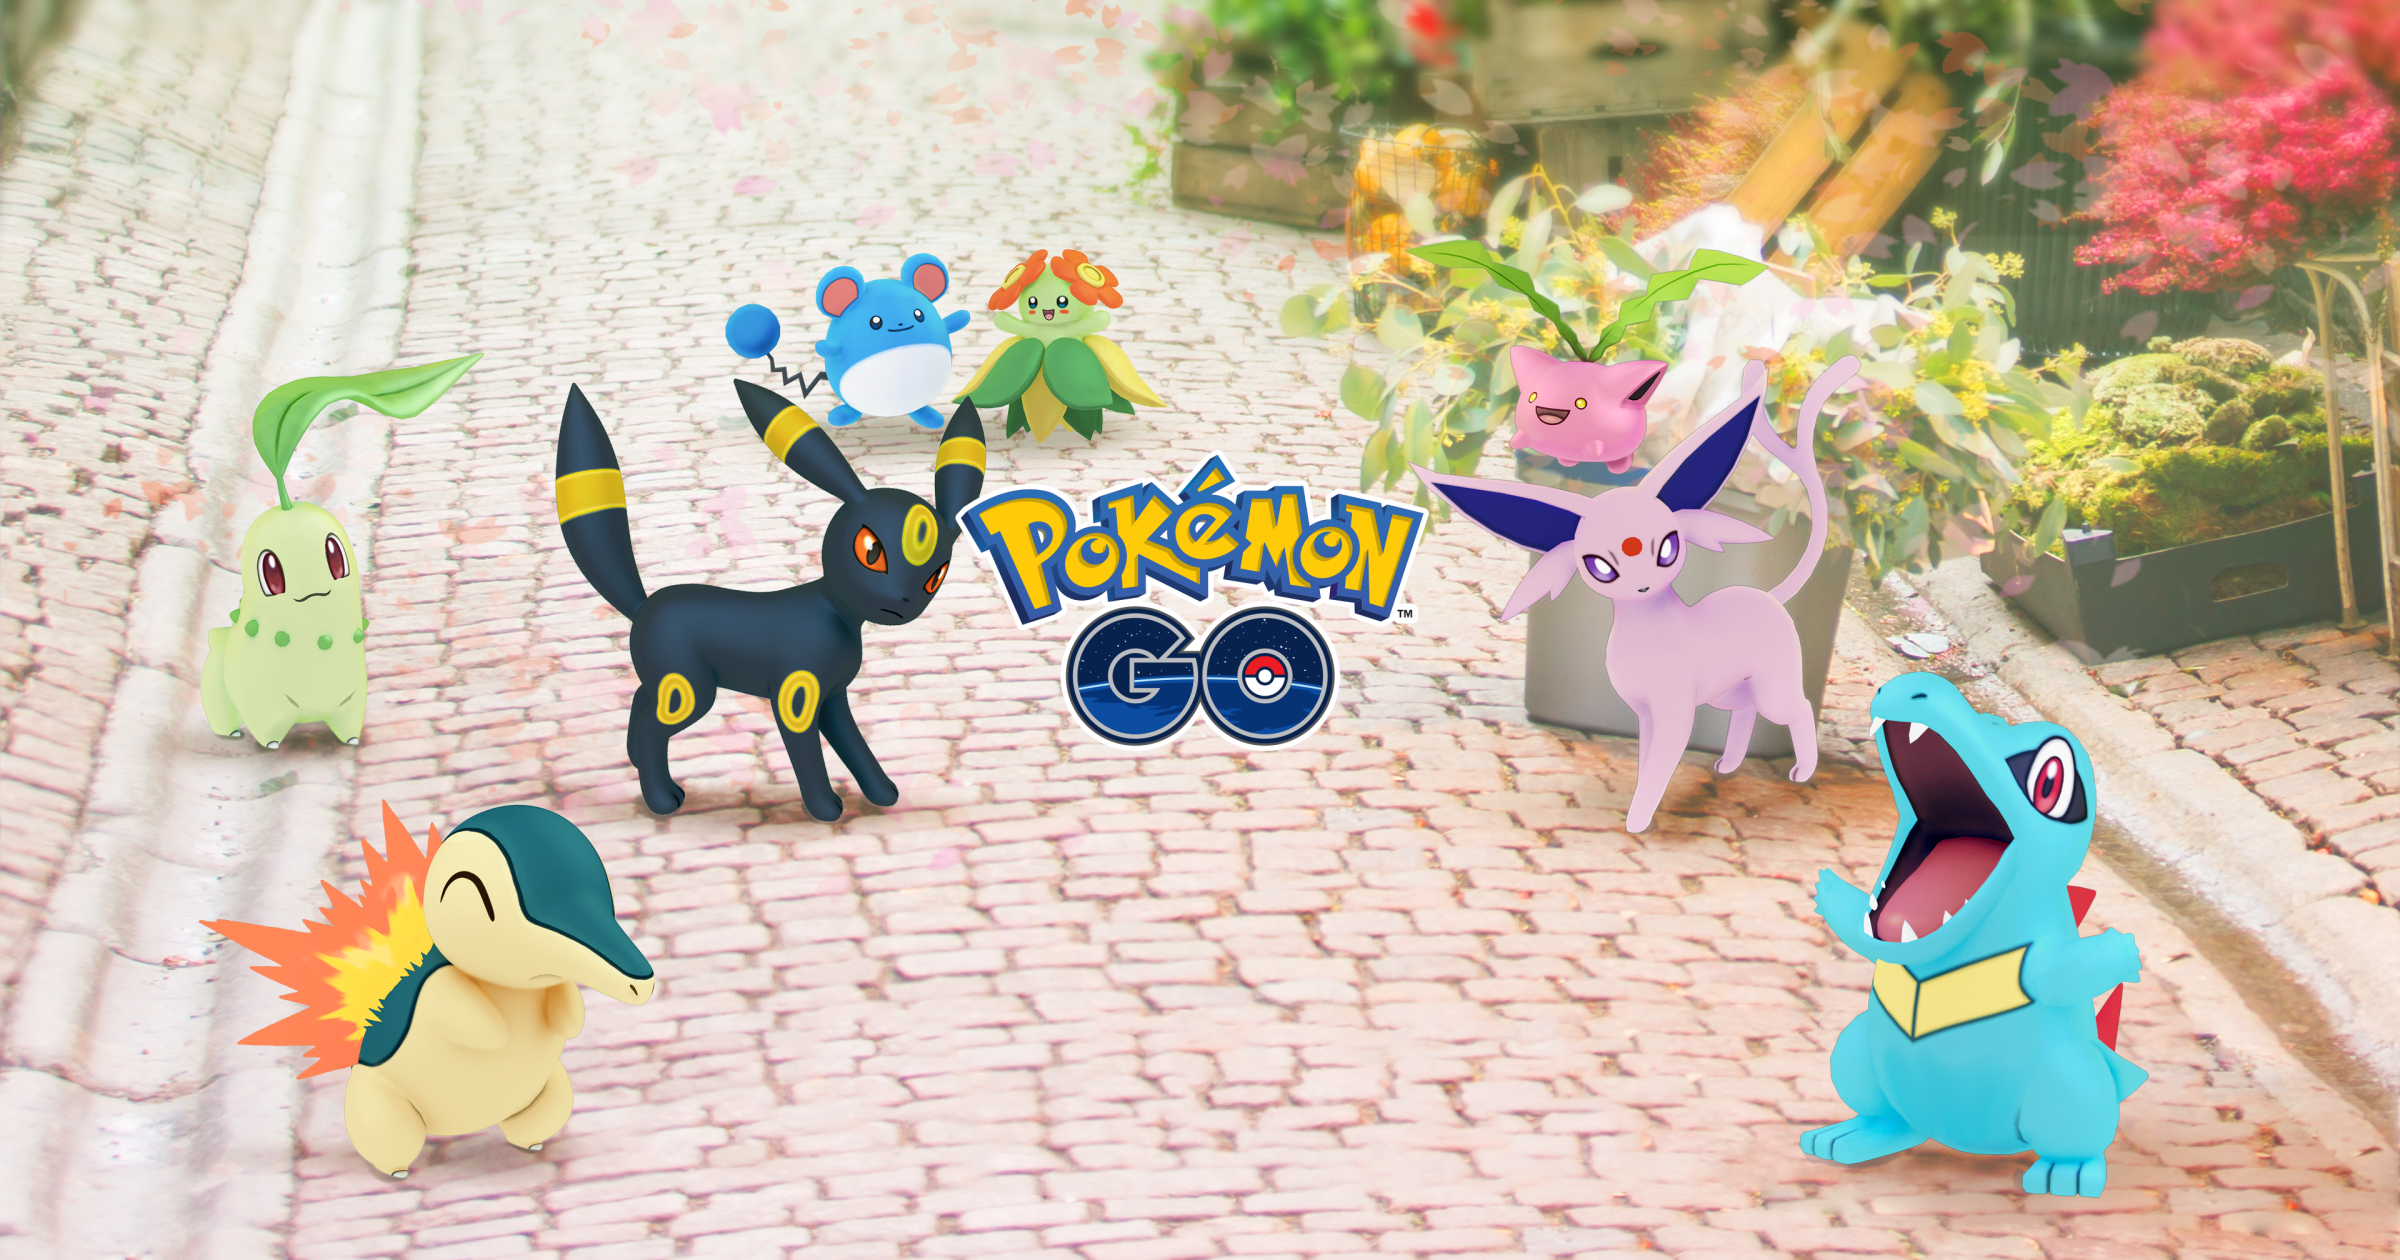 80 new Pokemon are coming to Go, but it will cost you